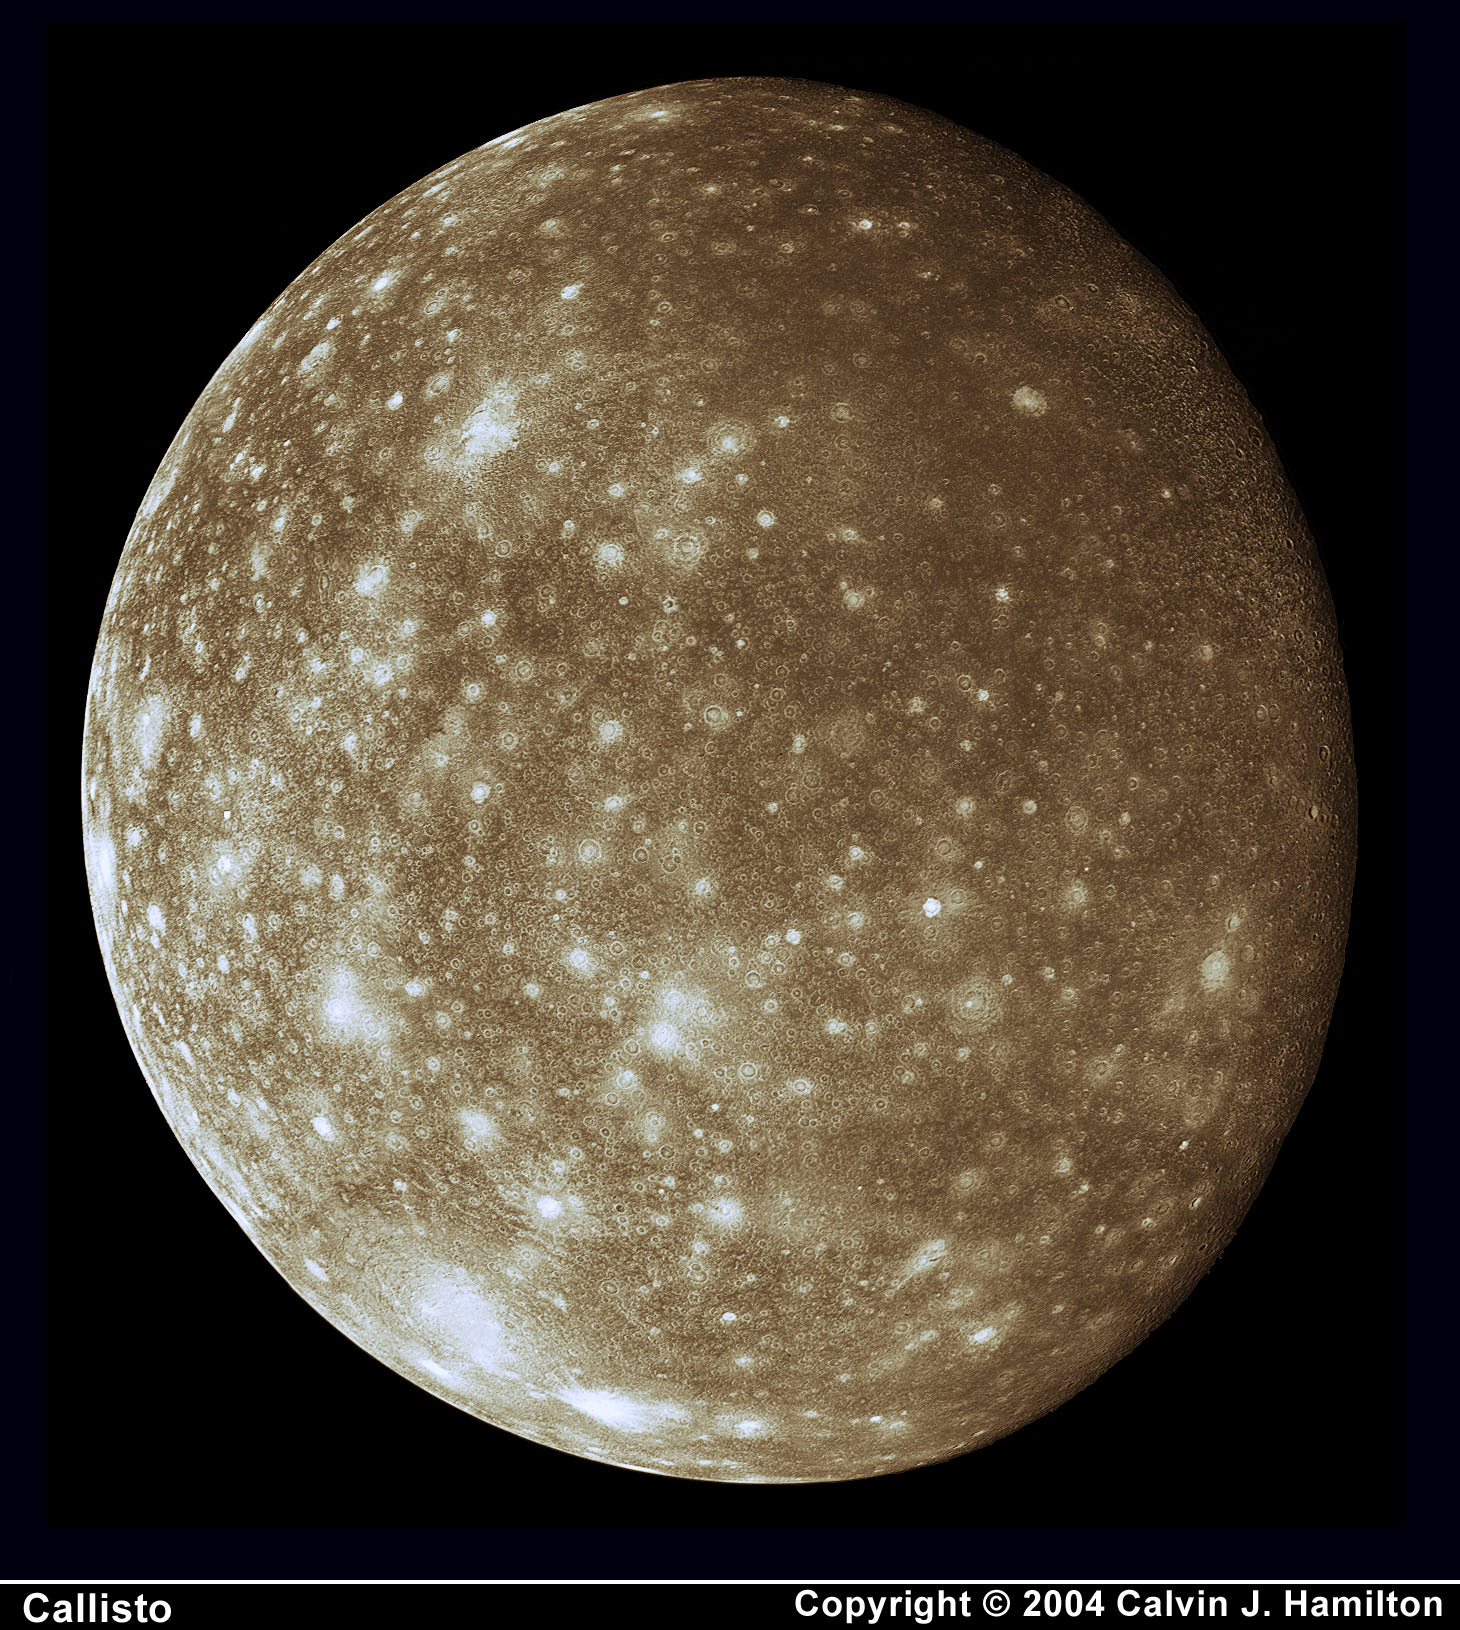 High Resolution Image Of Callisto